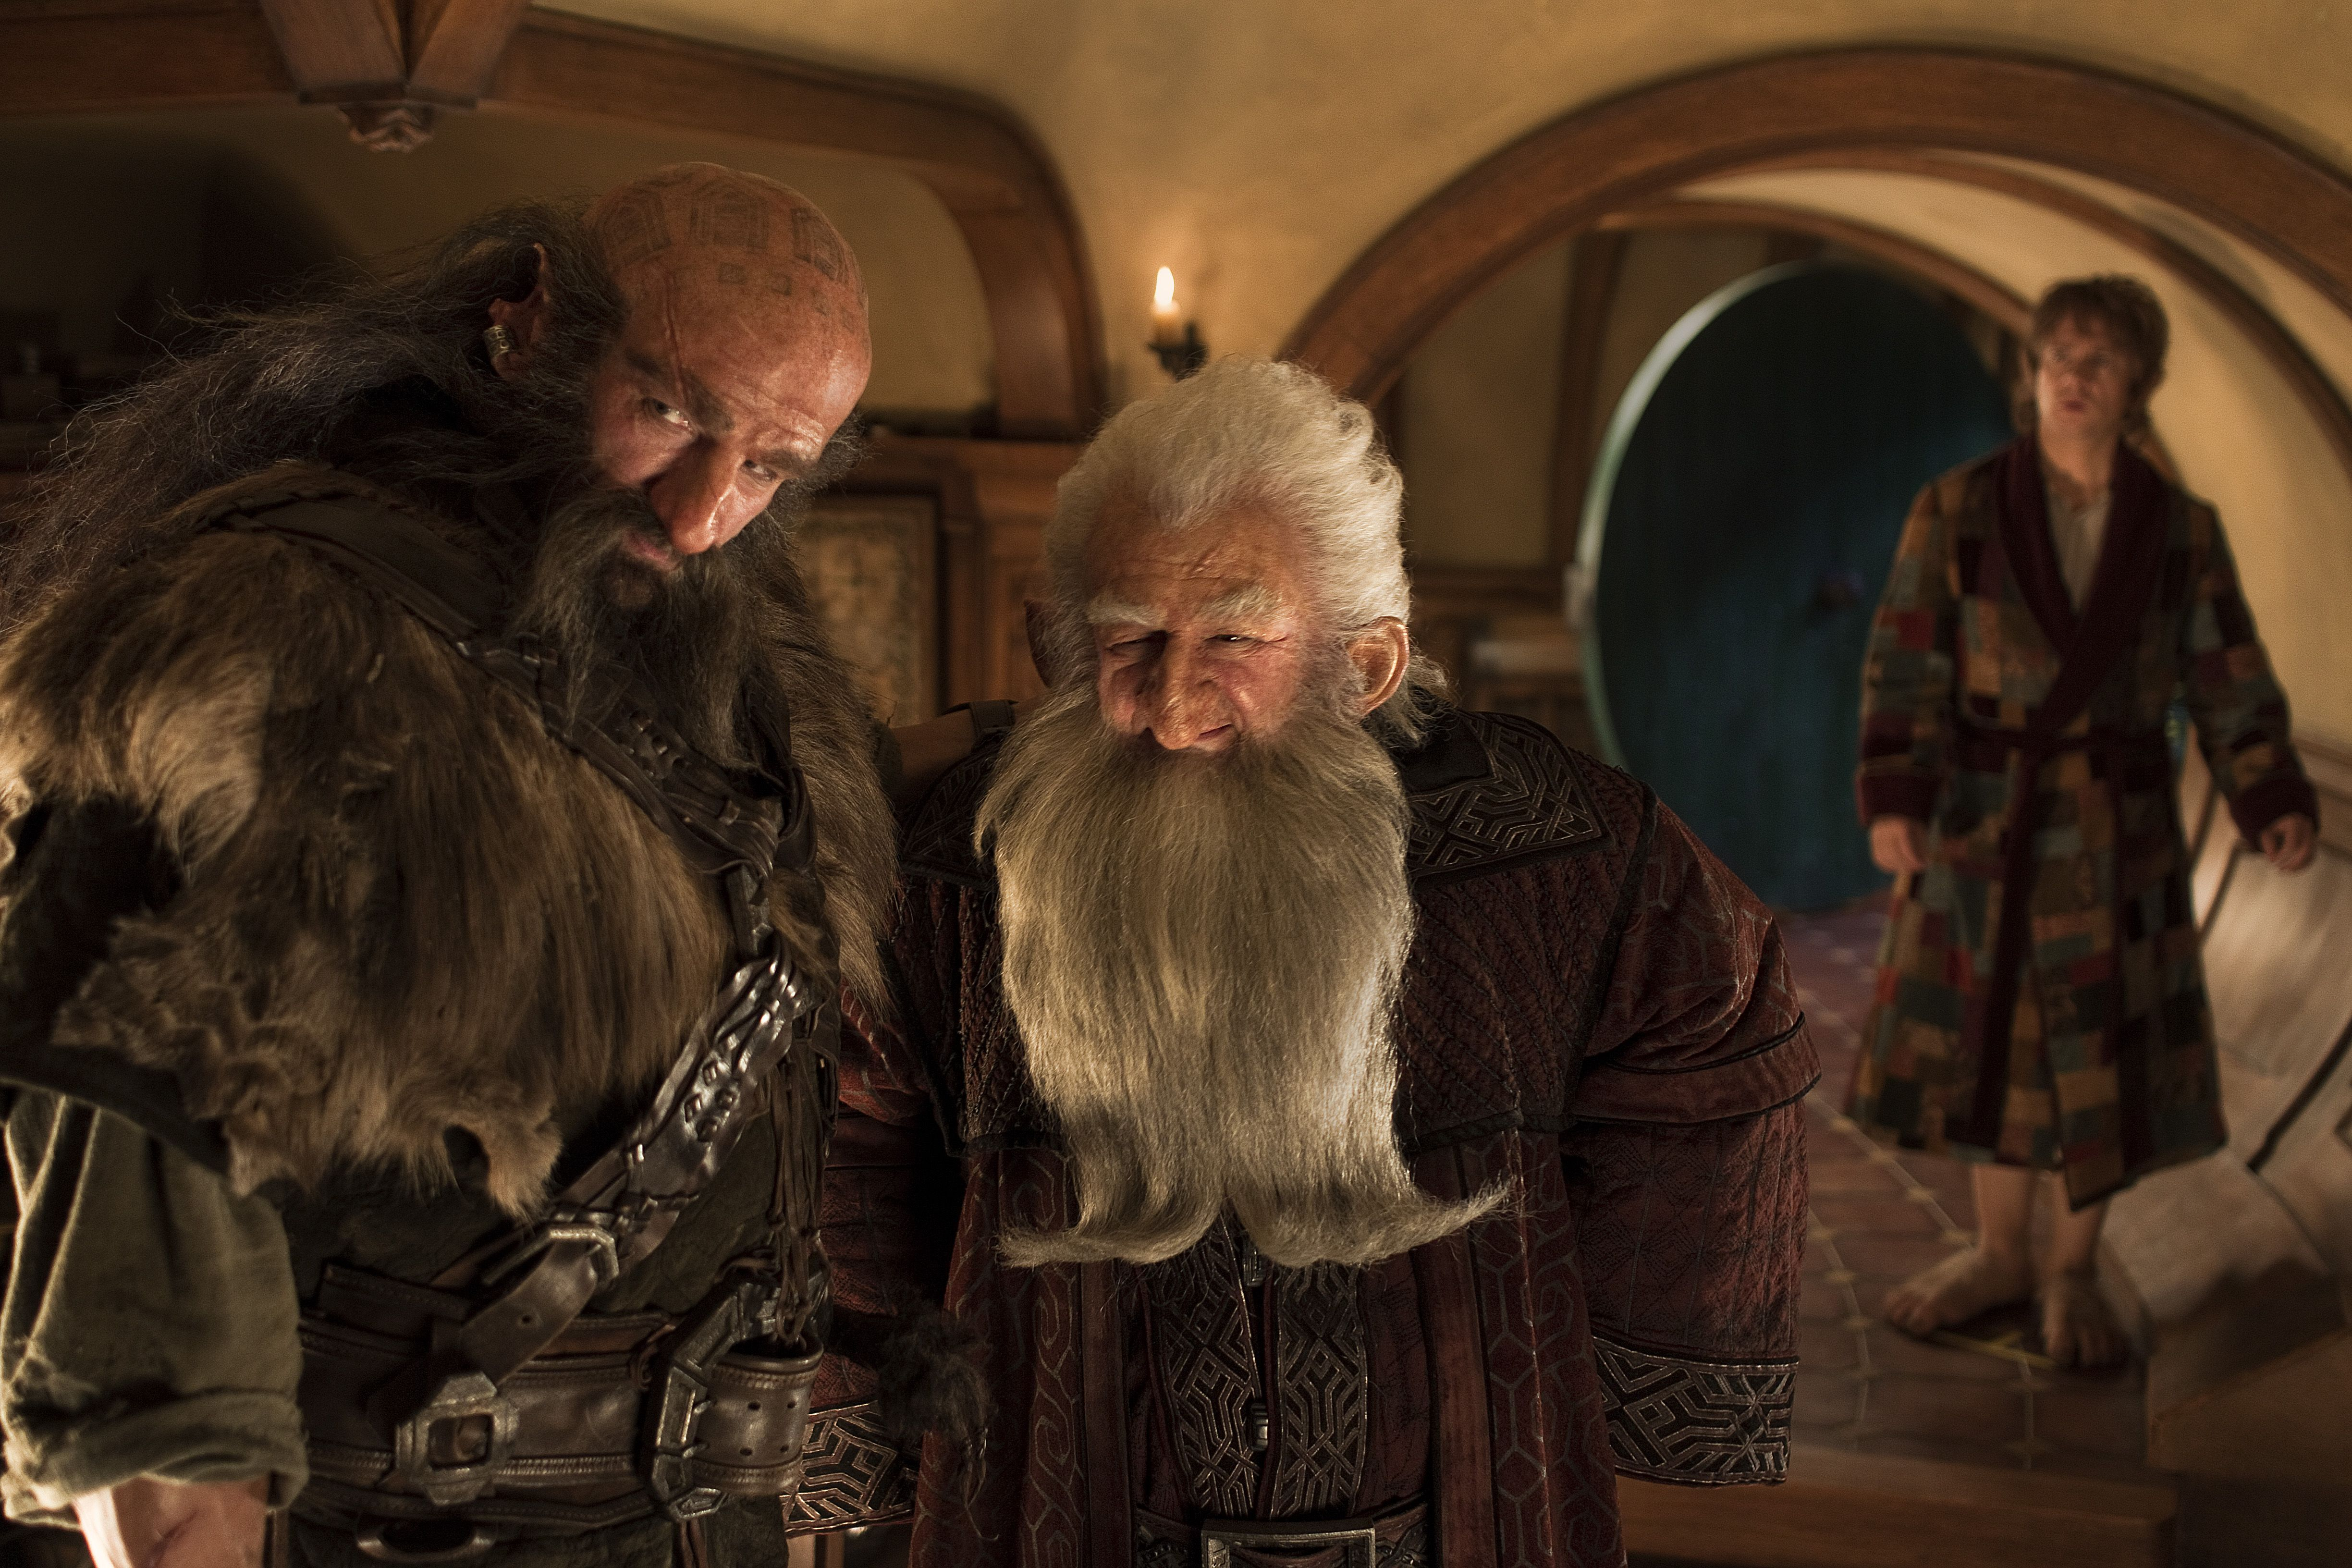 the hobbit trilogy connecting the dots and filling the blanks of